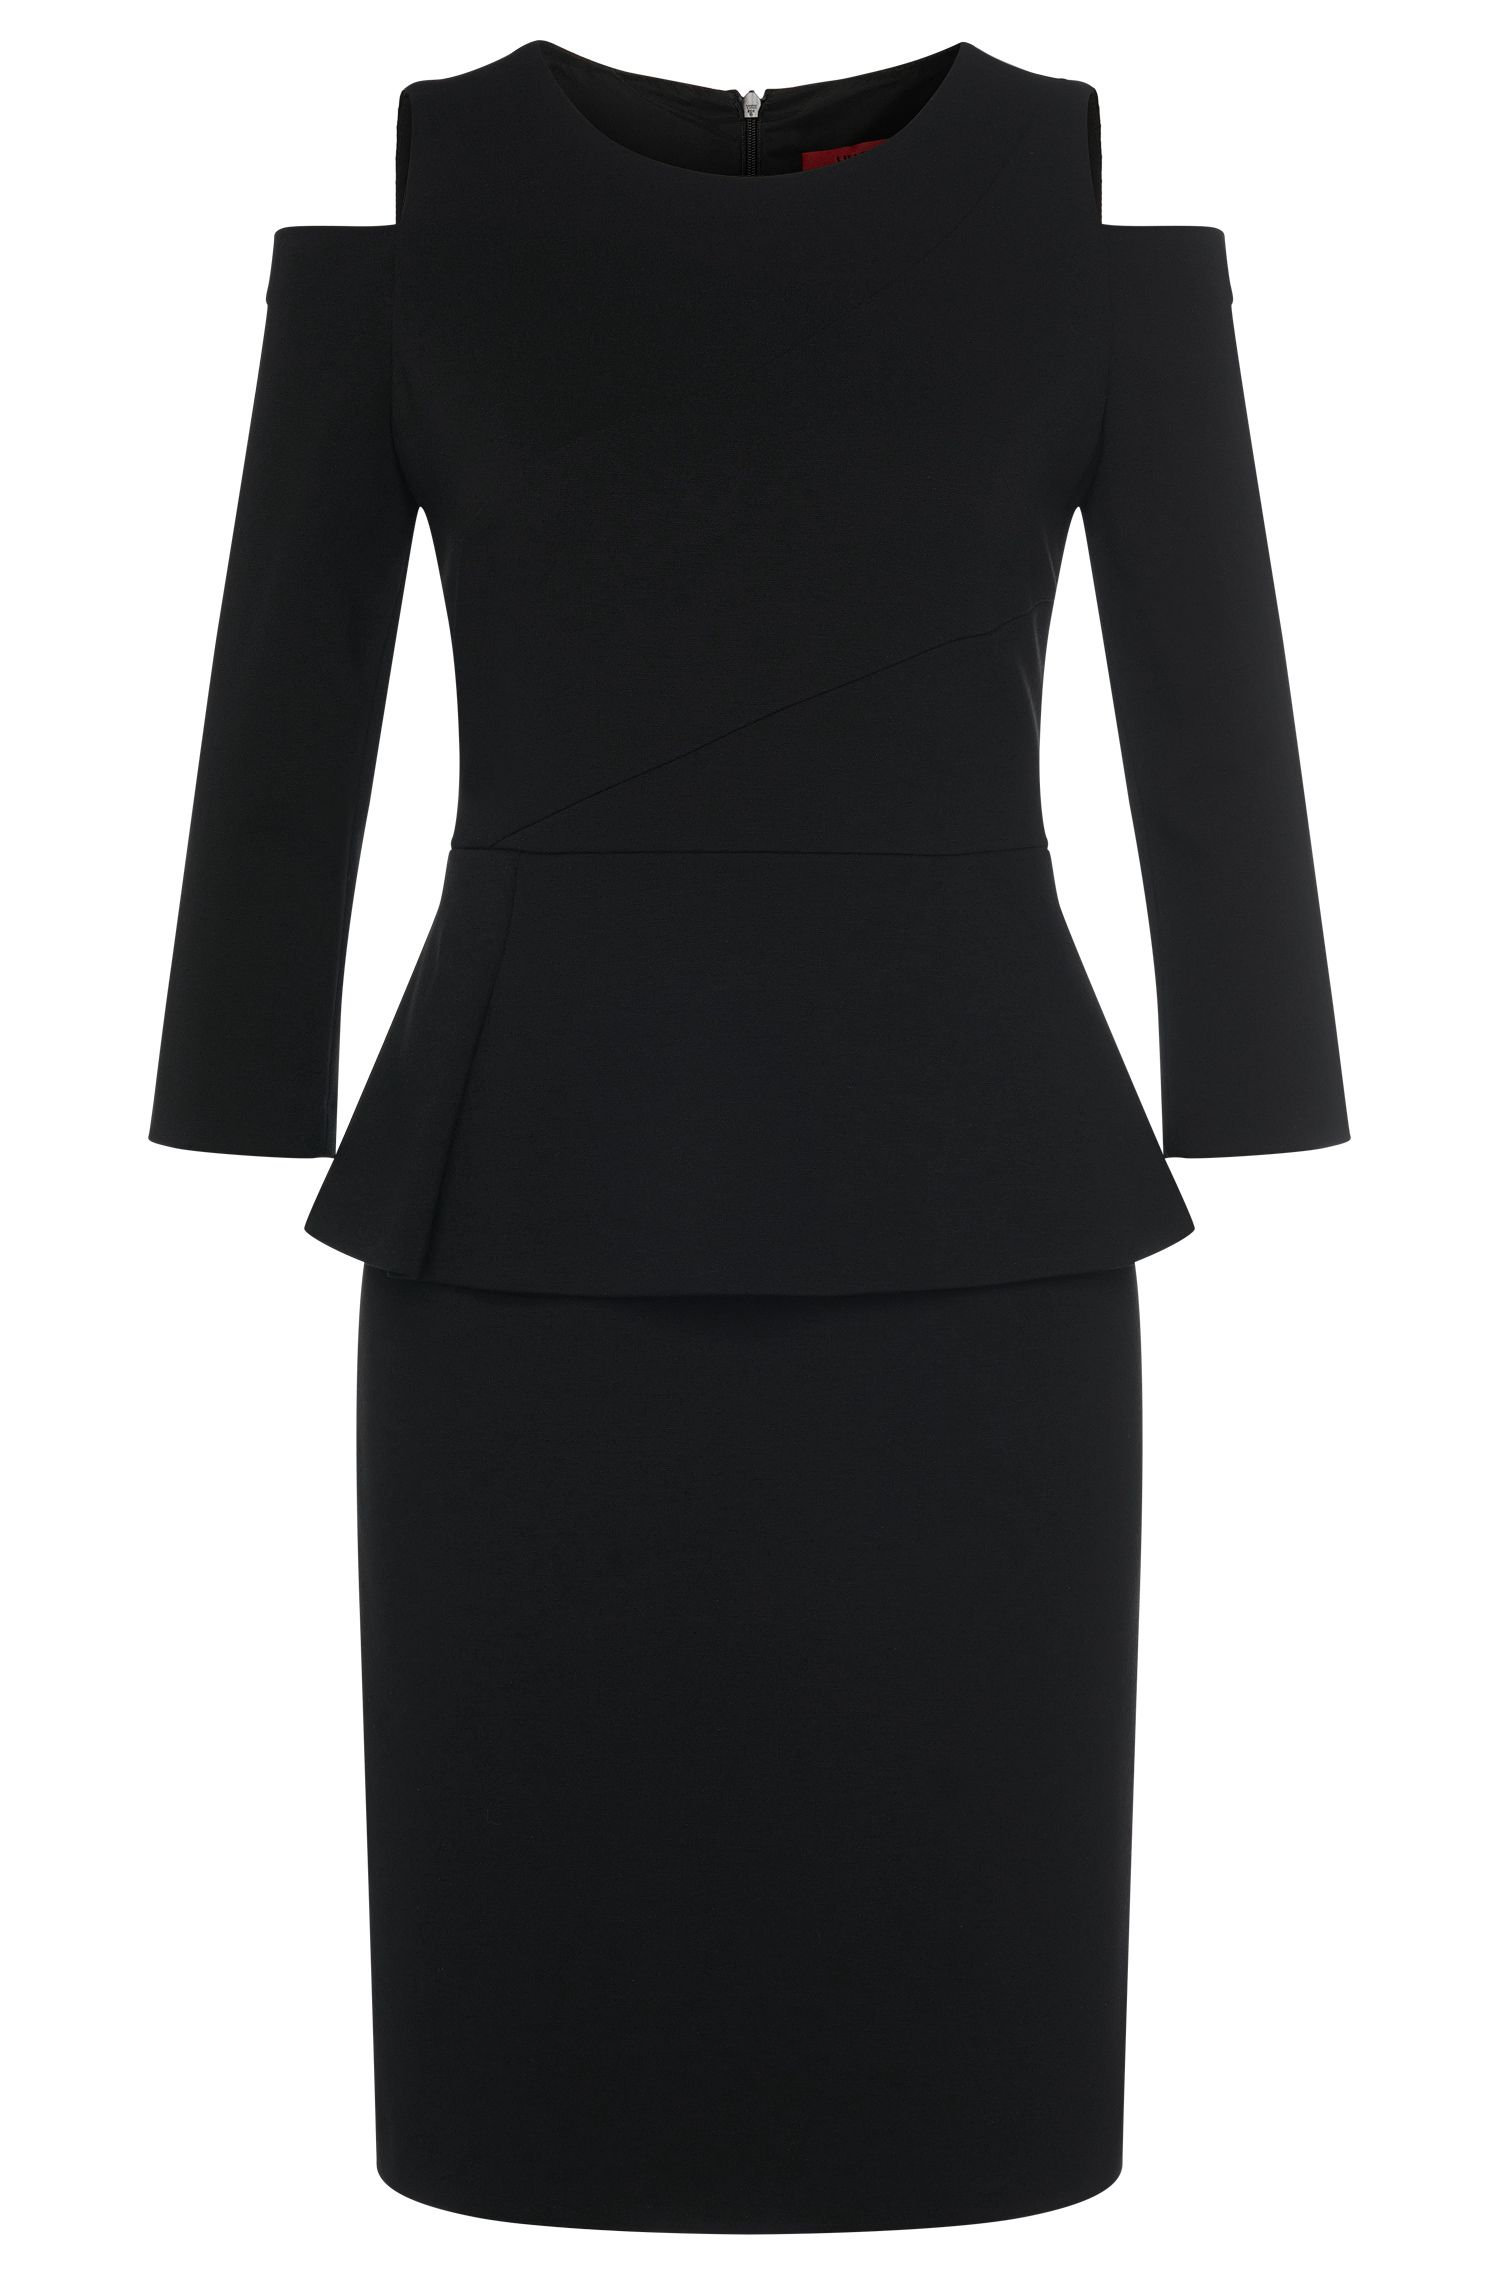 Sheath dress in viscose blend with peplum: 'Kepina'